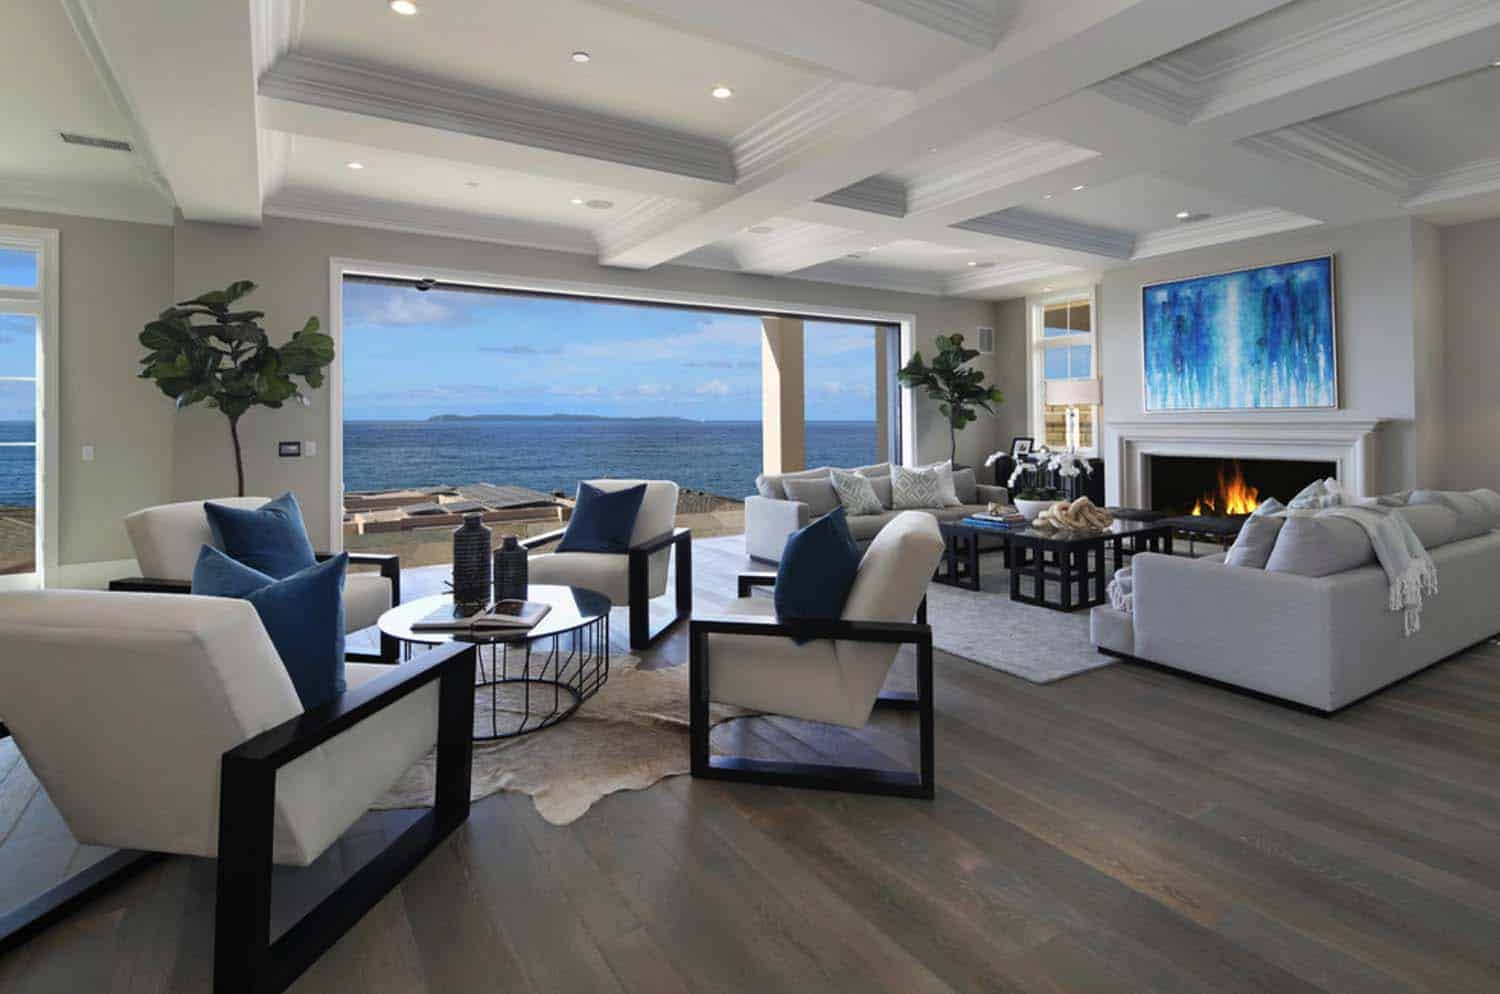 Southern California Beach House With A Fresh Take On Casual